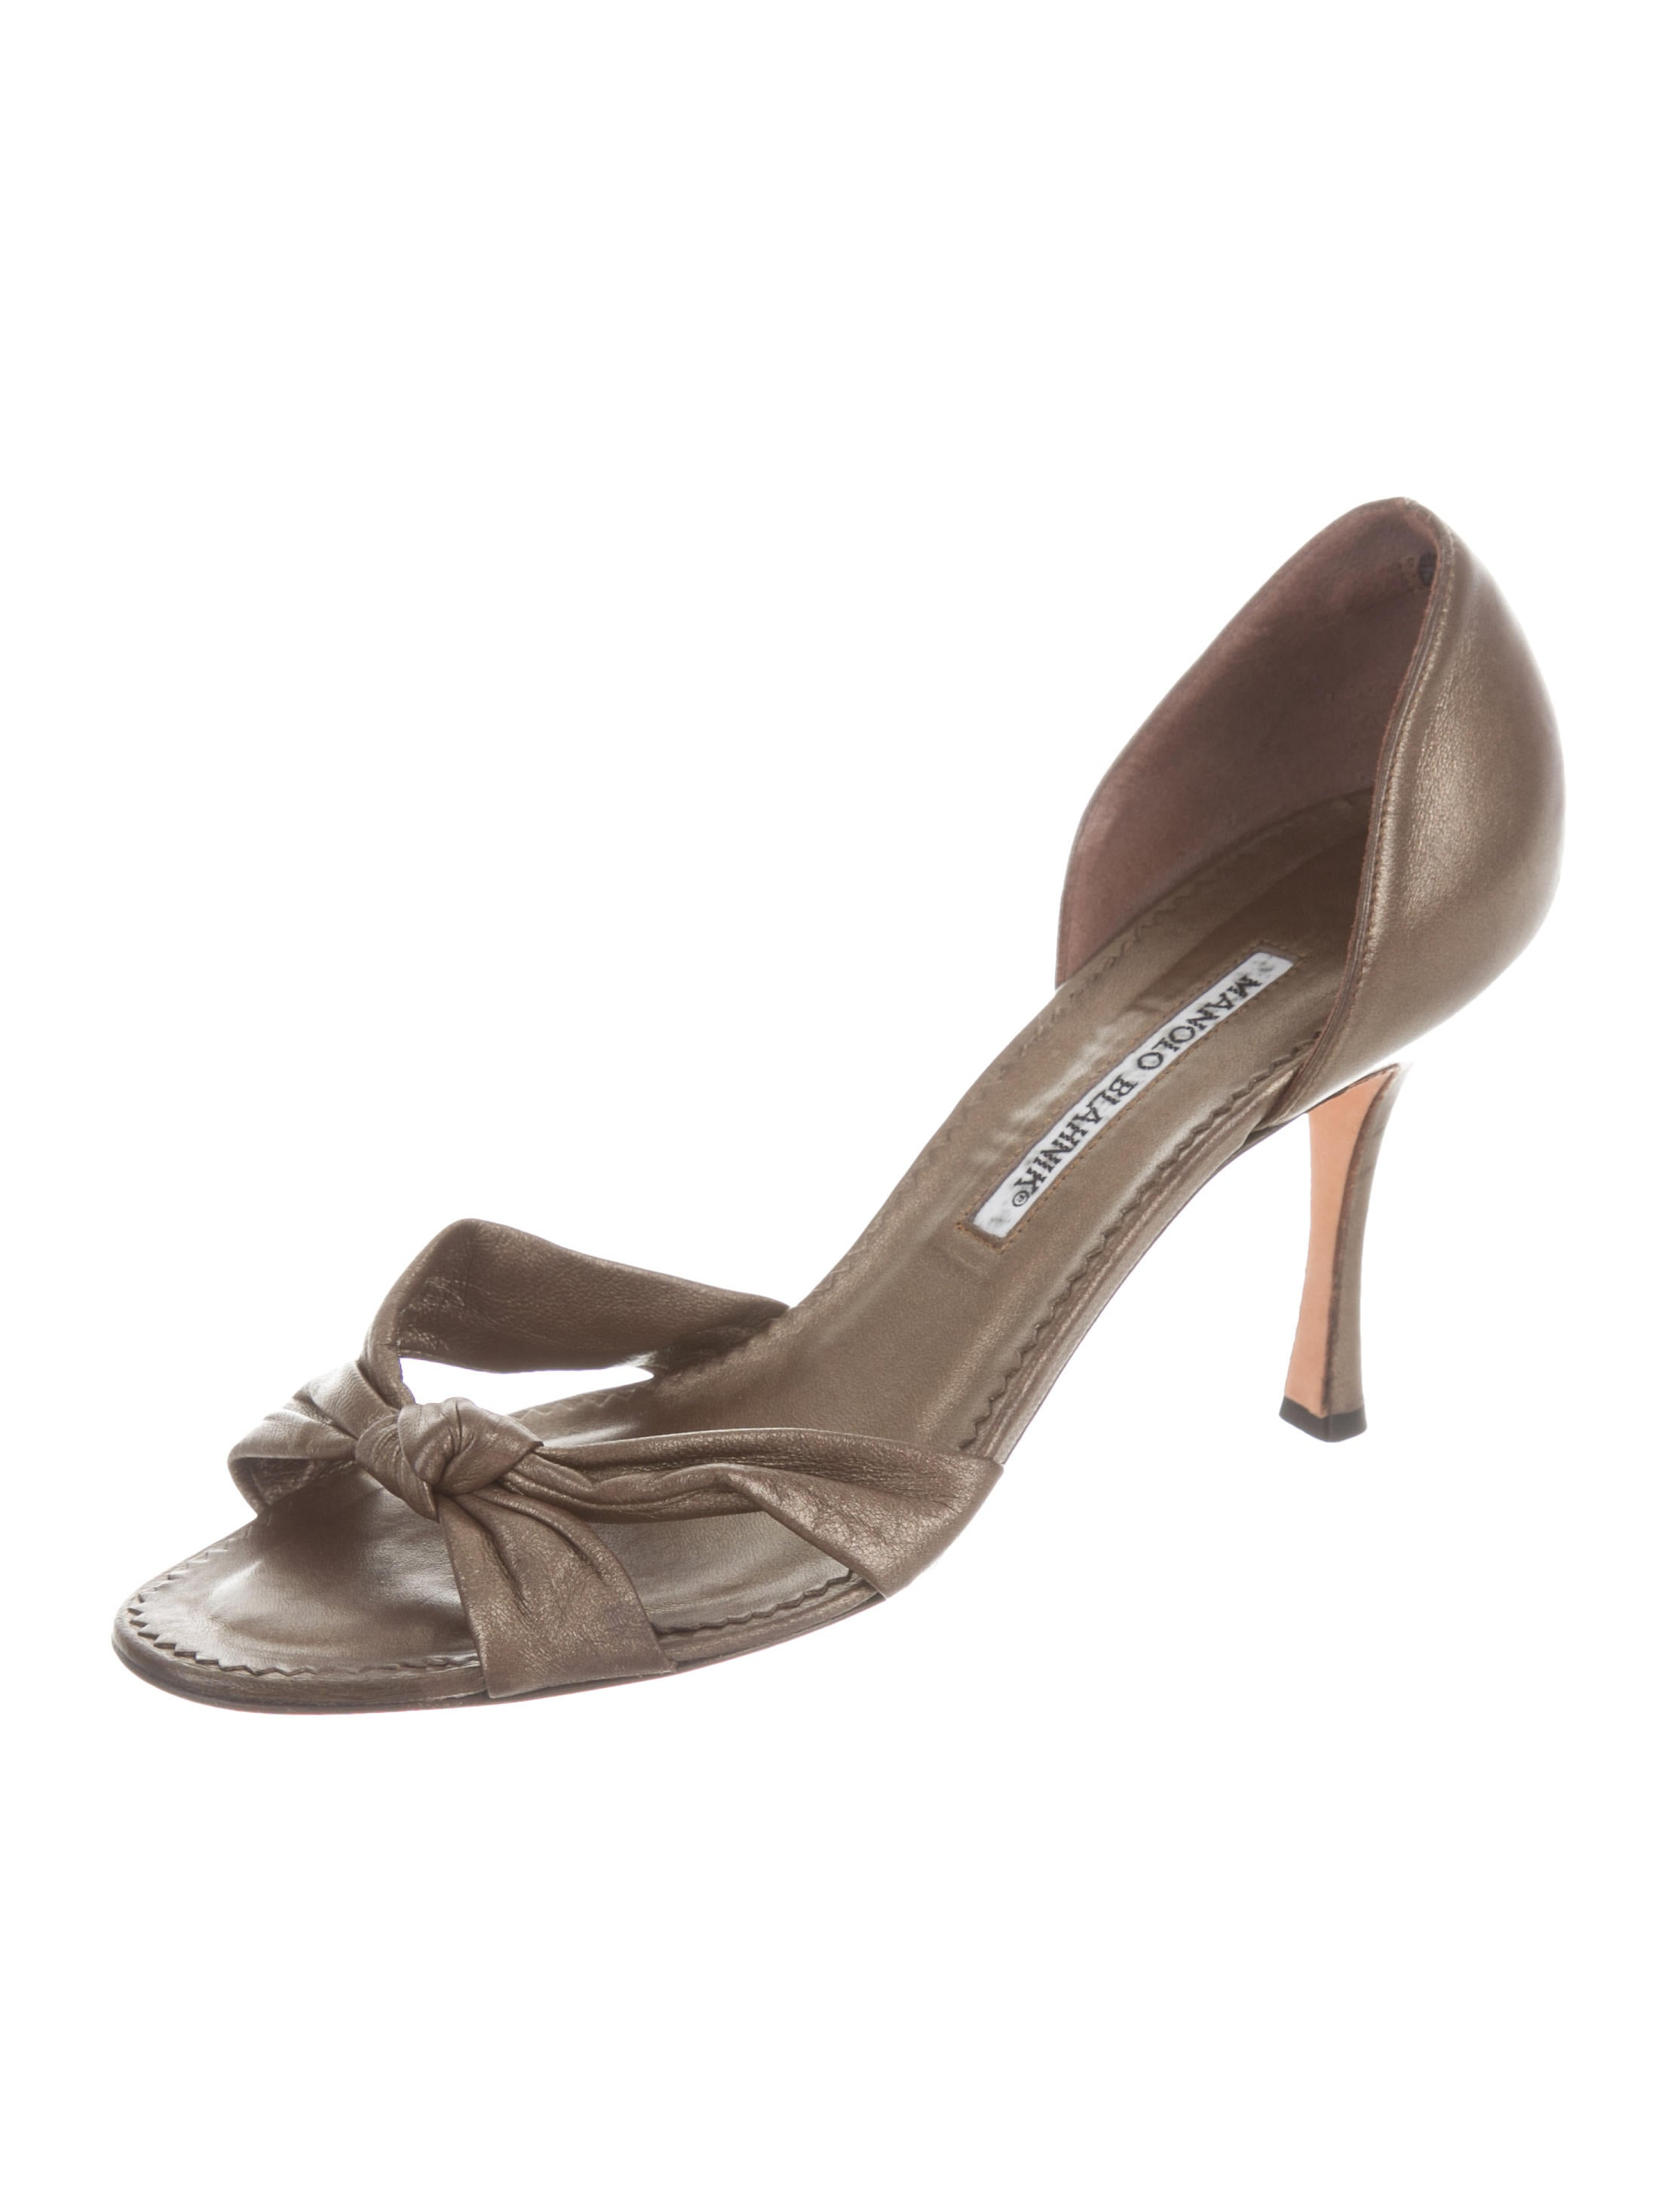 Manolo Blahnik Leather Knot-Accented Pumps 100% guaranteed online for sale cheap price from china sale discount clearance recommend rFtMp0